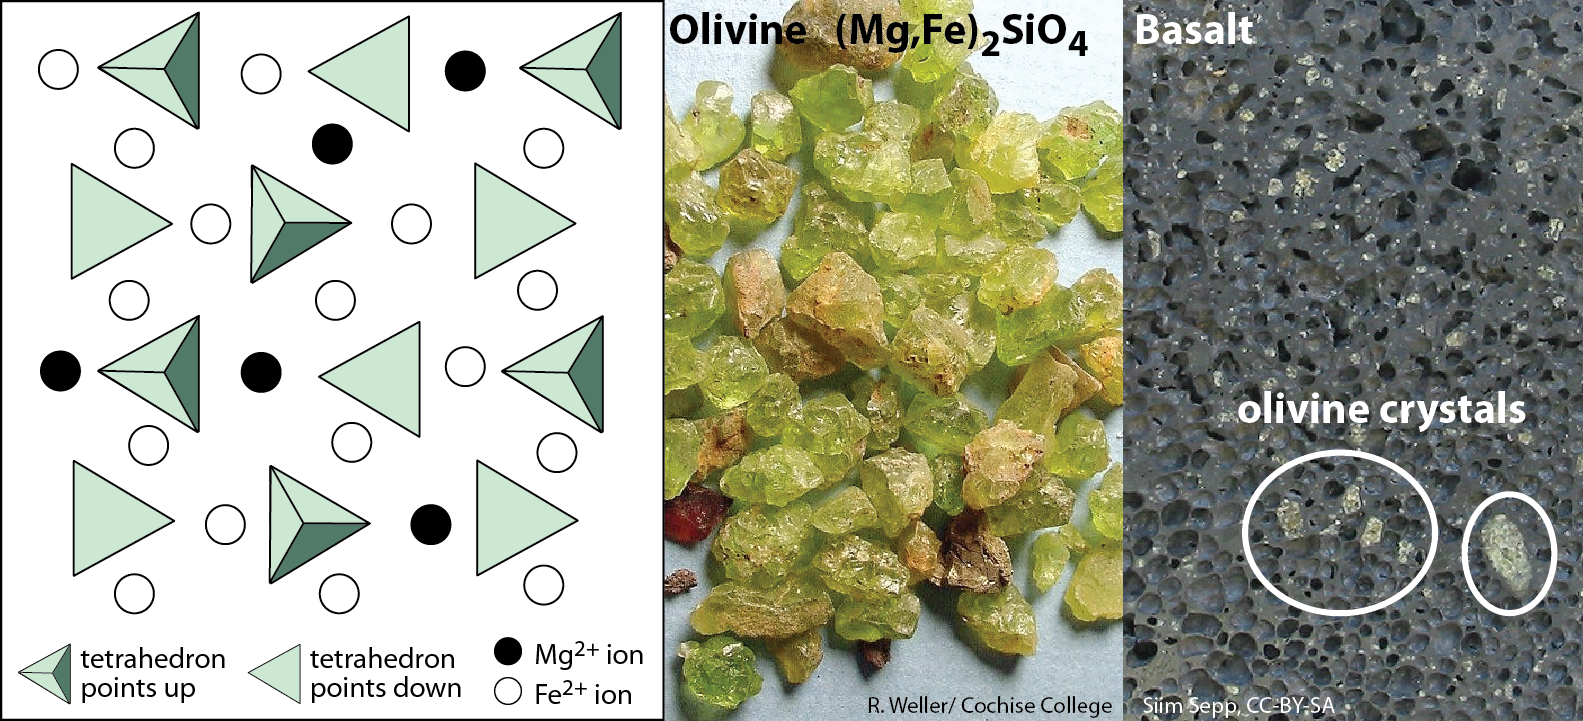 Olivine is a silicate mineral made of isolated silica tetrahedra bonded to Fe and Mg ions (left; modified after Steven Earle bit.ly/OlivineXtl). Olivine crystals (centre) can often be found in the volcanic igneous rock called basalt (right). [KP; R. Weller photos by permission for NC use]